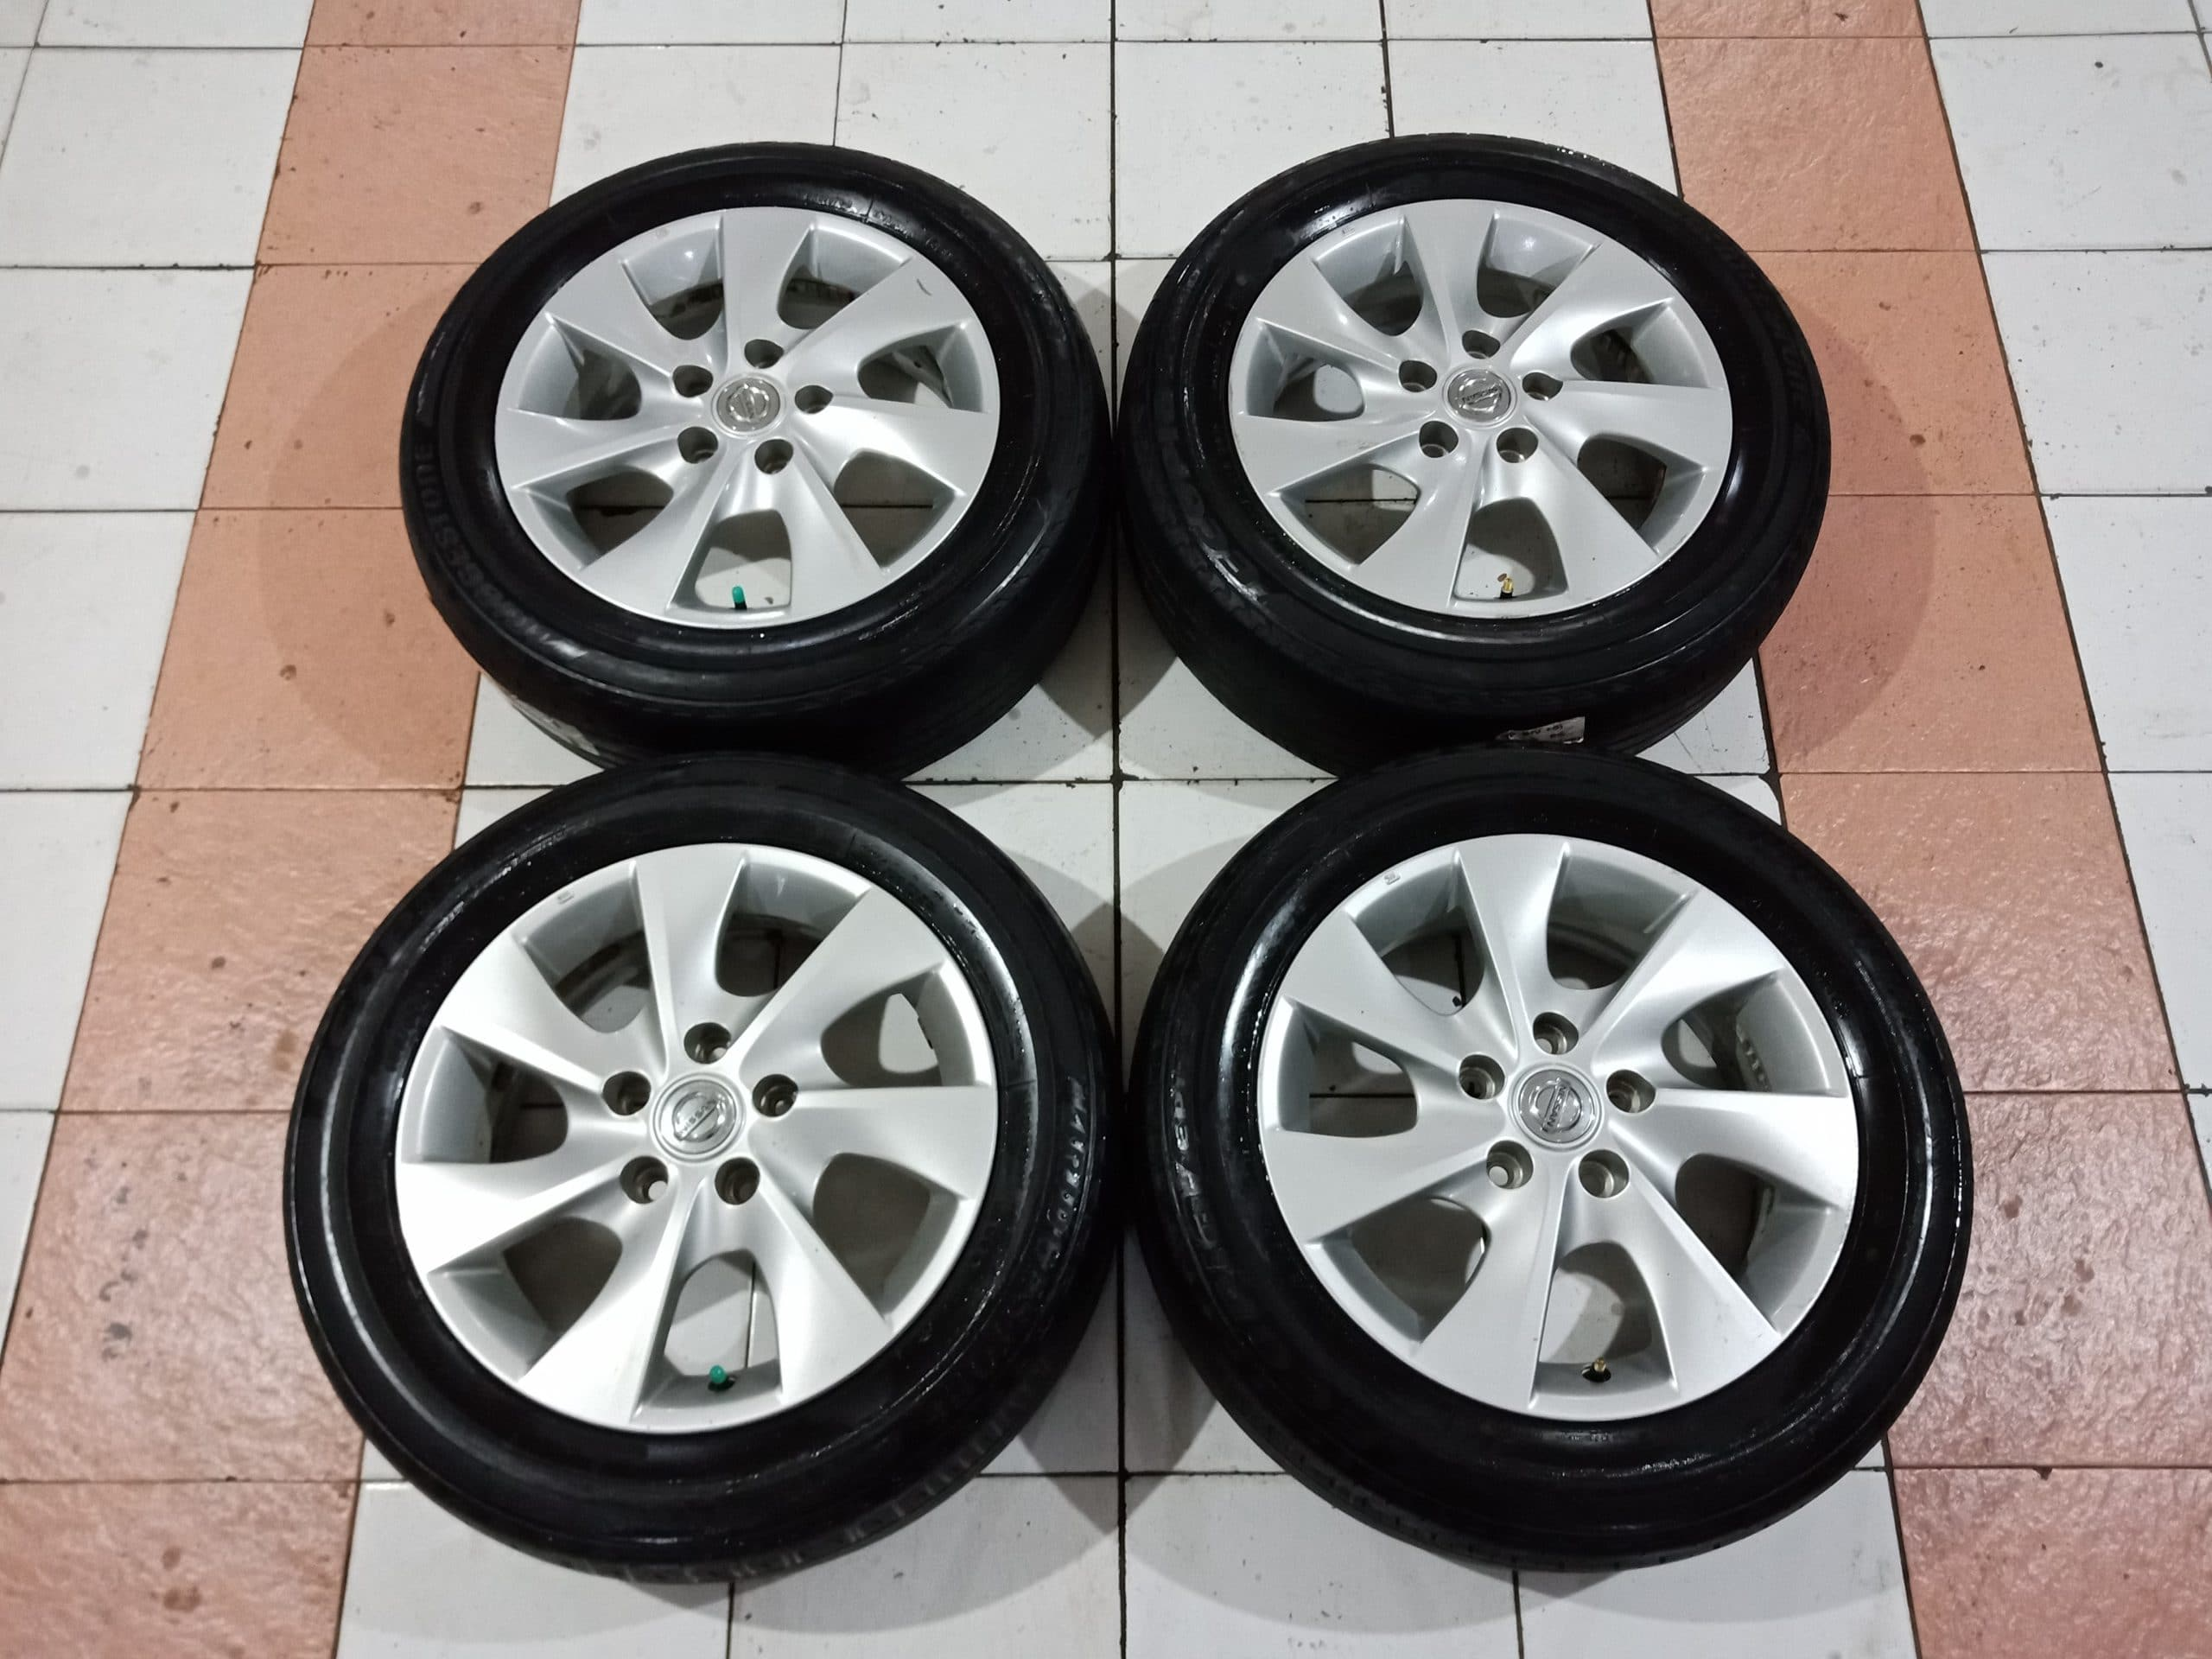 Velg Original Serena Ring 16 Pcd 5×114 Plus Ban